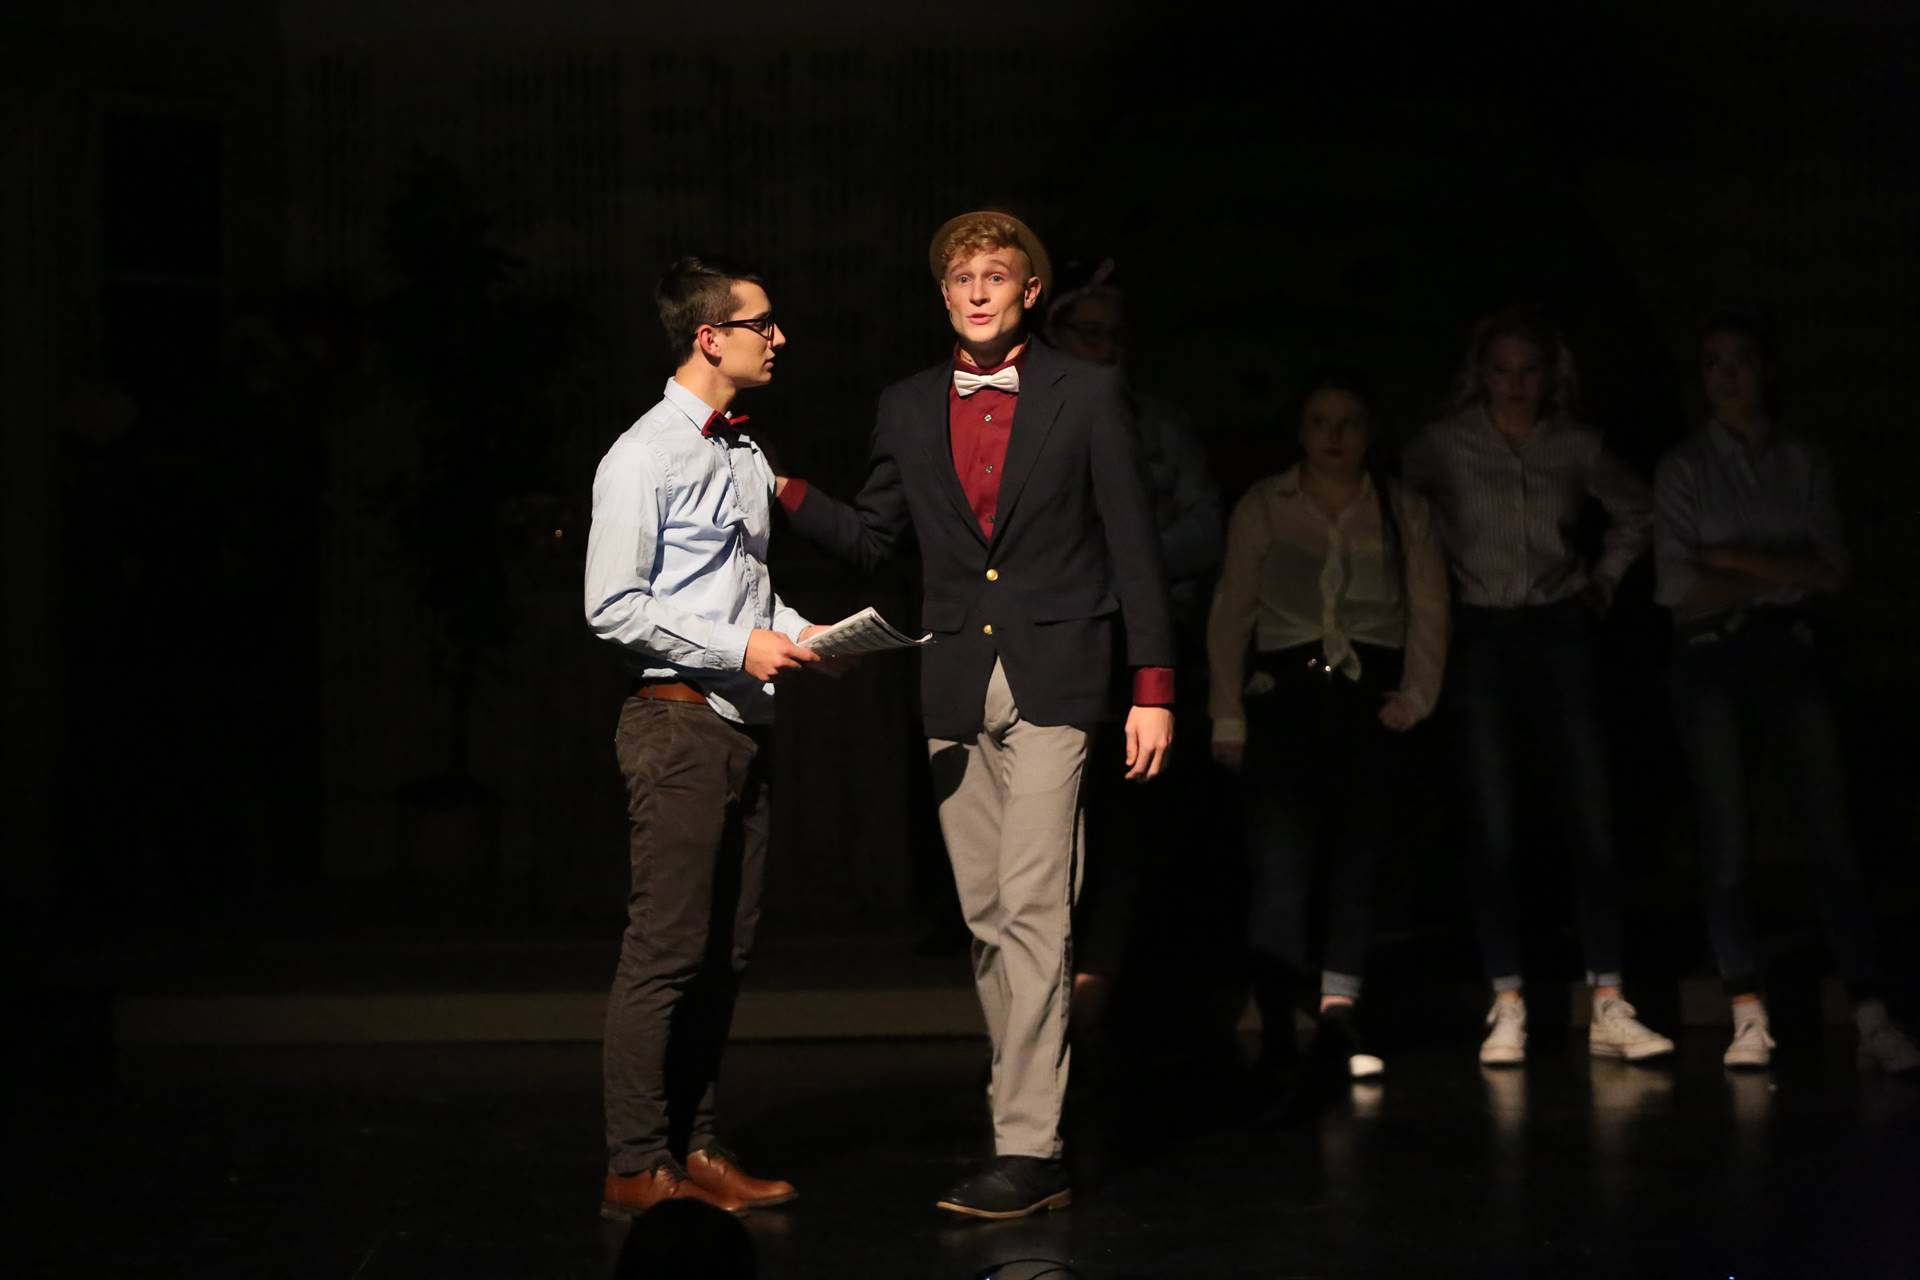 Two high school students on stage acting in a play